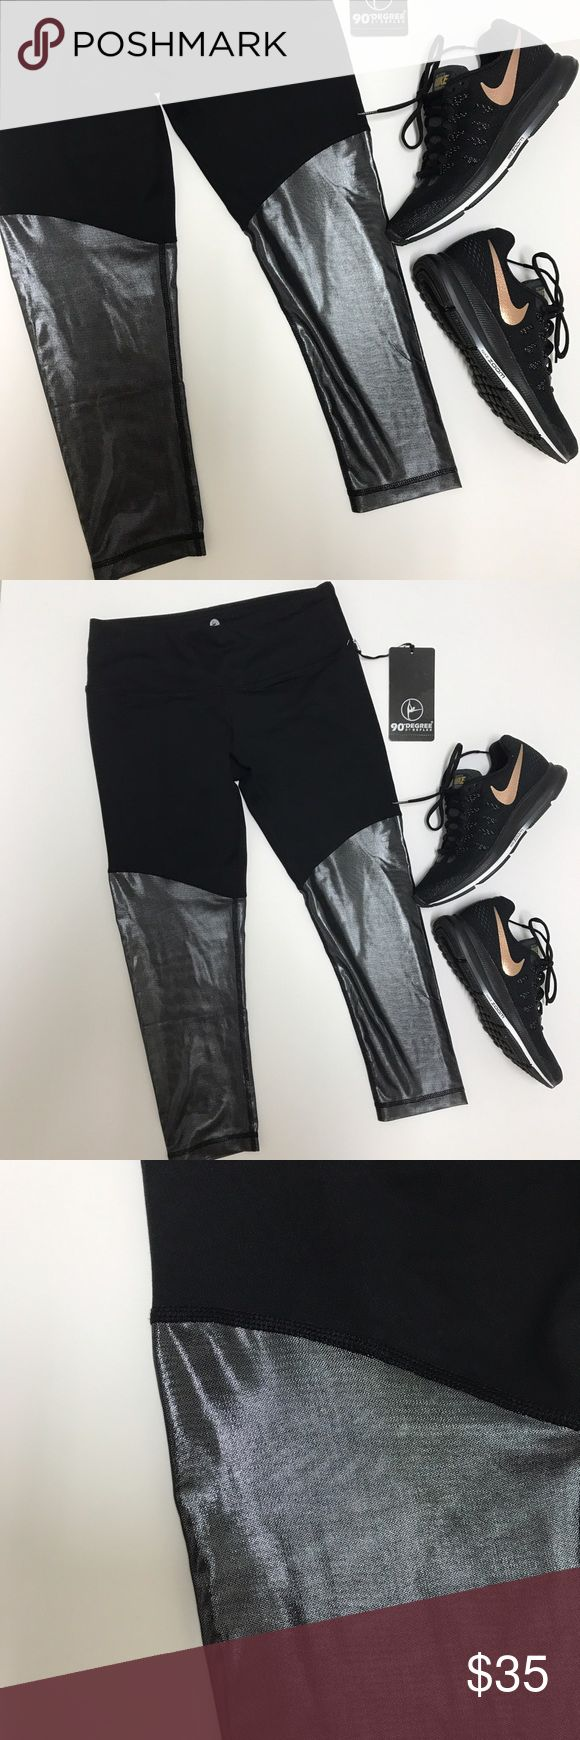 {90 Degree} Metallic Silver Mesh Crop NWT. Black & silver (more of a gunmetal) gym/running/just-generally-looking-badass crop. 90 Degree by Reflex. Size small. { Super Fast Shipping / 15% Off Bundles / Reasonable Offers Are Welcome, But Lowballing Makes Me Sad } 90 Degree by Reflex Pants Ankle & Cropped